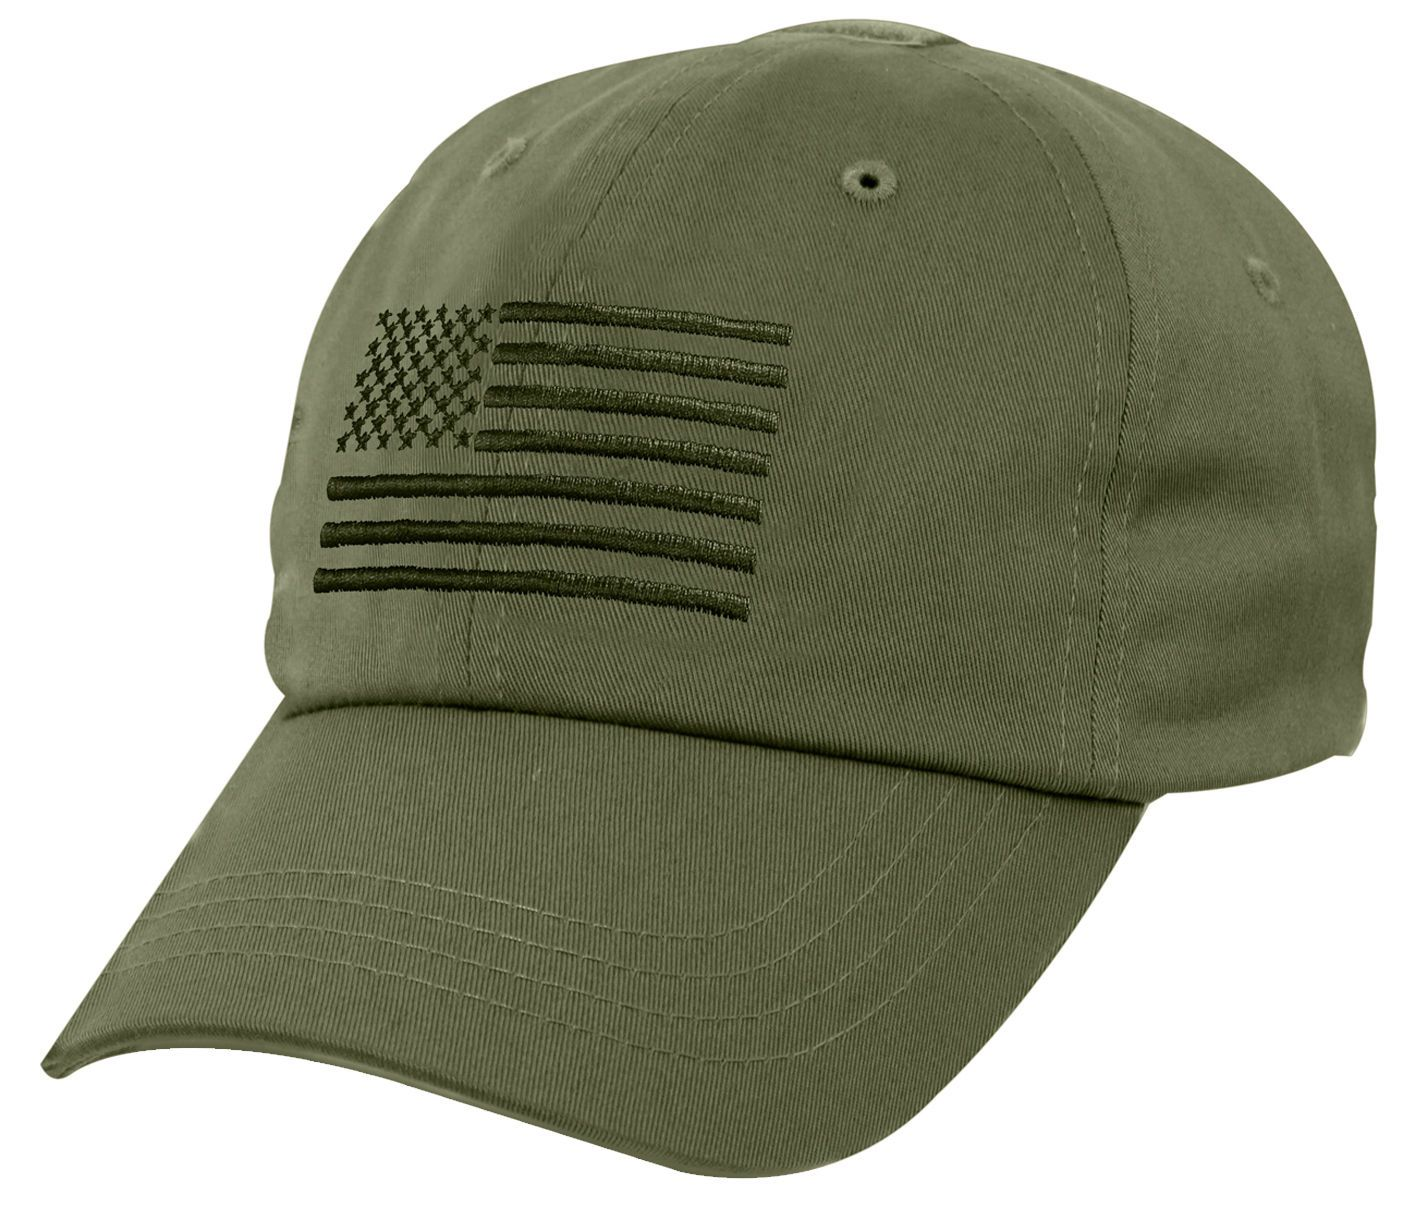 a020c105e Tactical Cap Operator Hat Ballcap Olive Drab USA US Flag Rothco 4633 ...